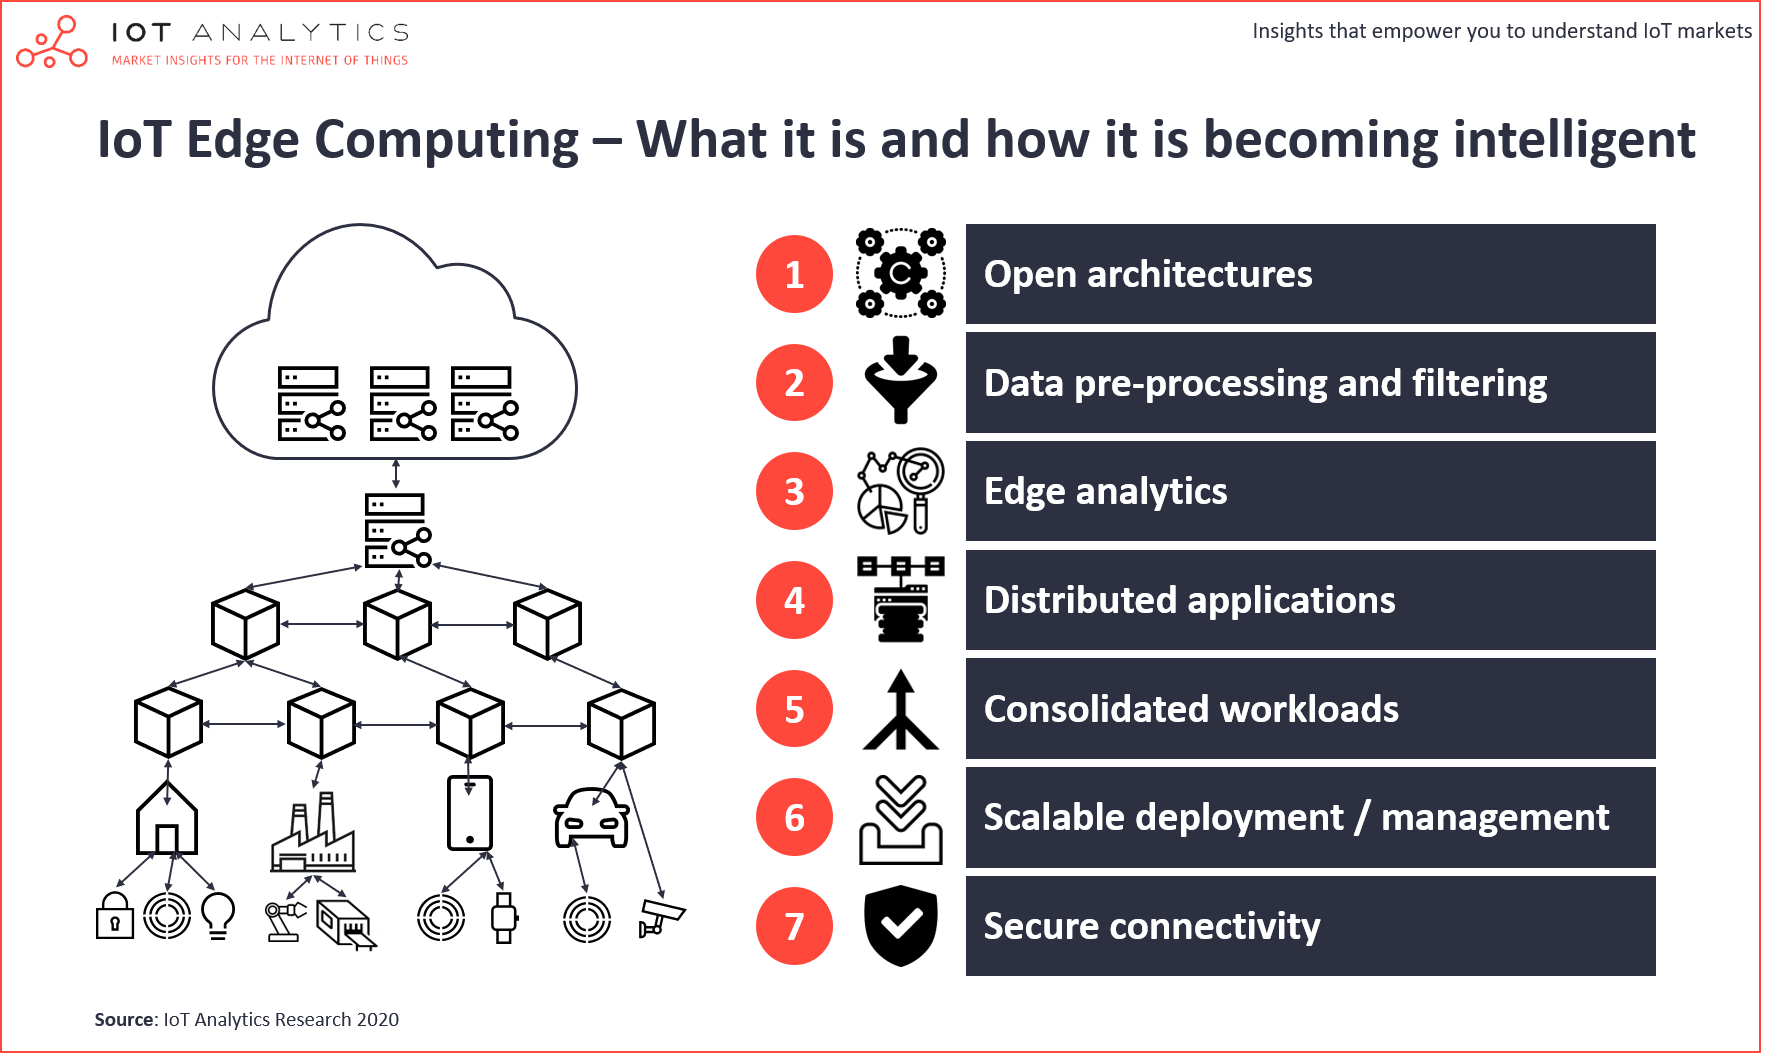 IoT edge computing – what it is and how it is becoming more intelligent